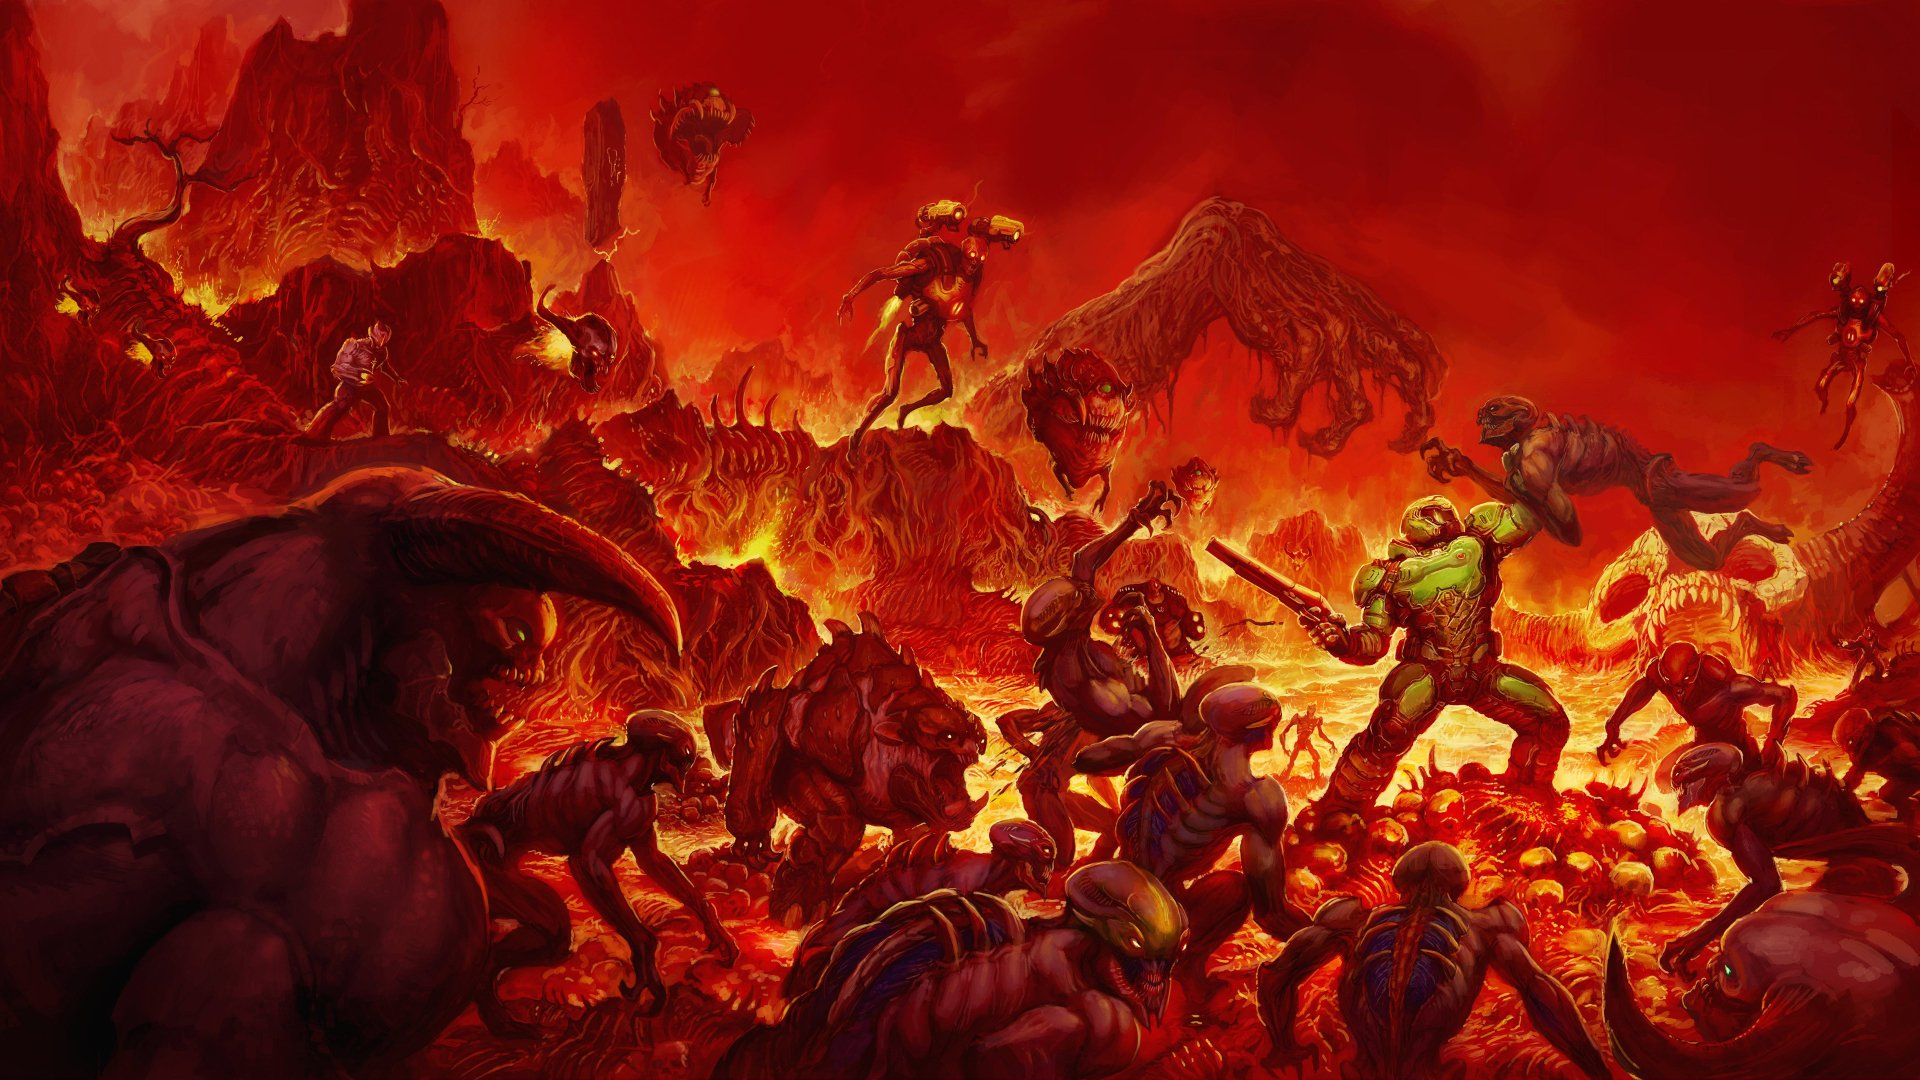 62 Doom 2016 Hd Wallpapers Background Images Wallpaper Abyss